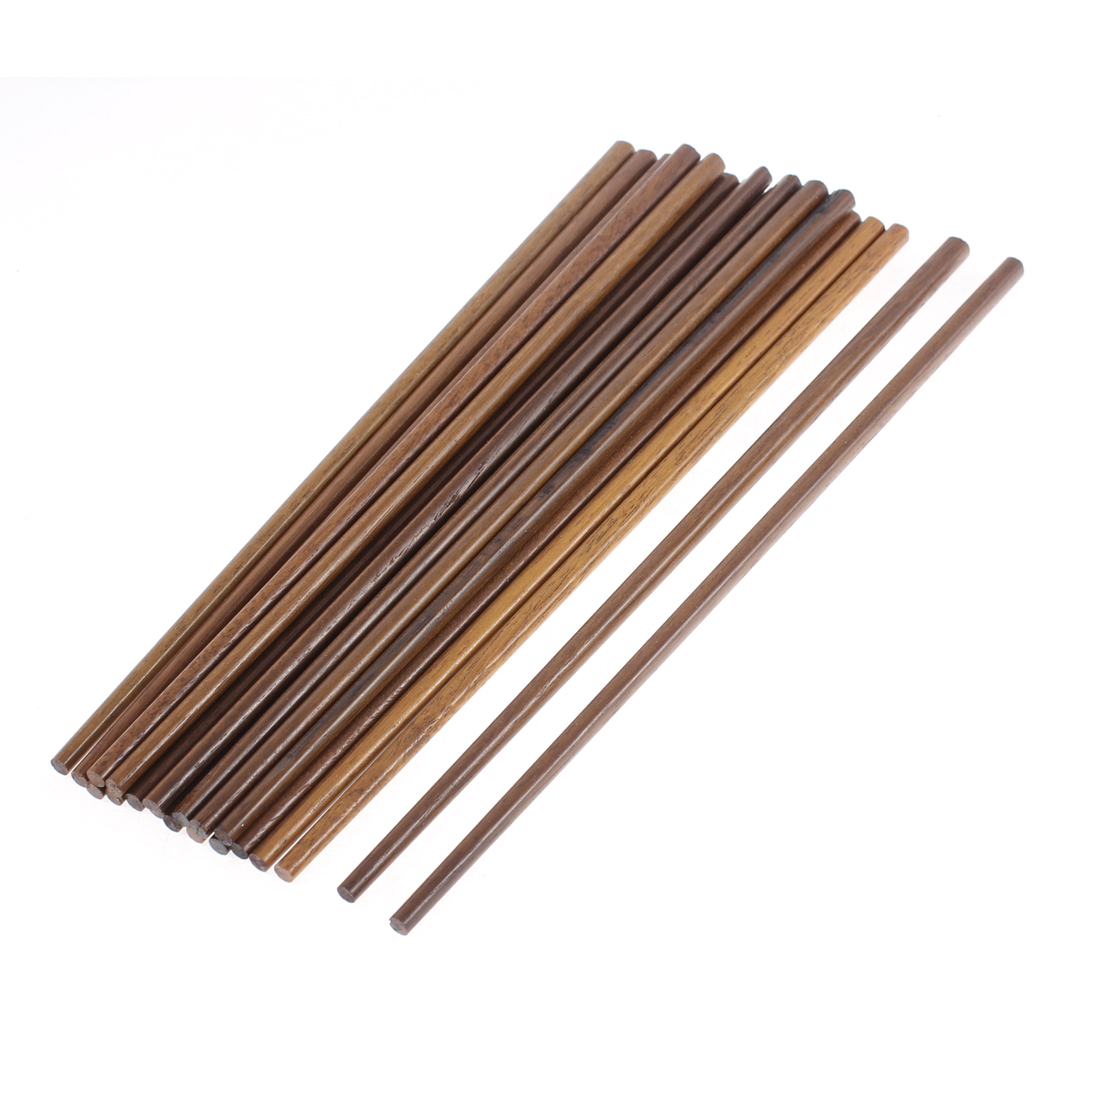 10 Pairs Restaurant Home Kitchen Brown Wood Chopsticks Dishware 24cm Length